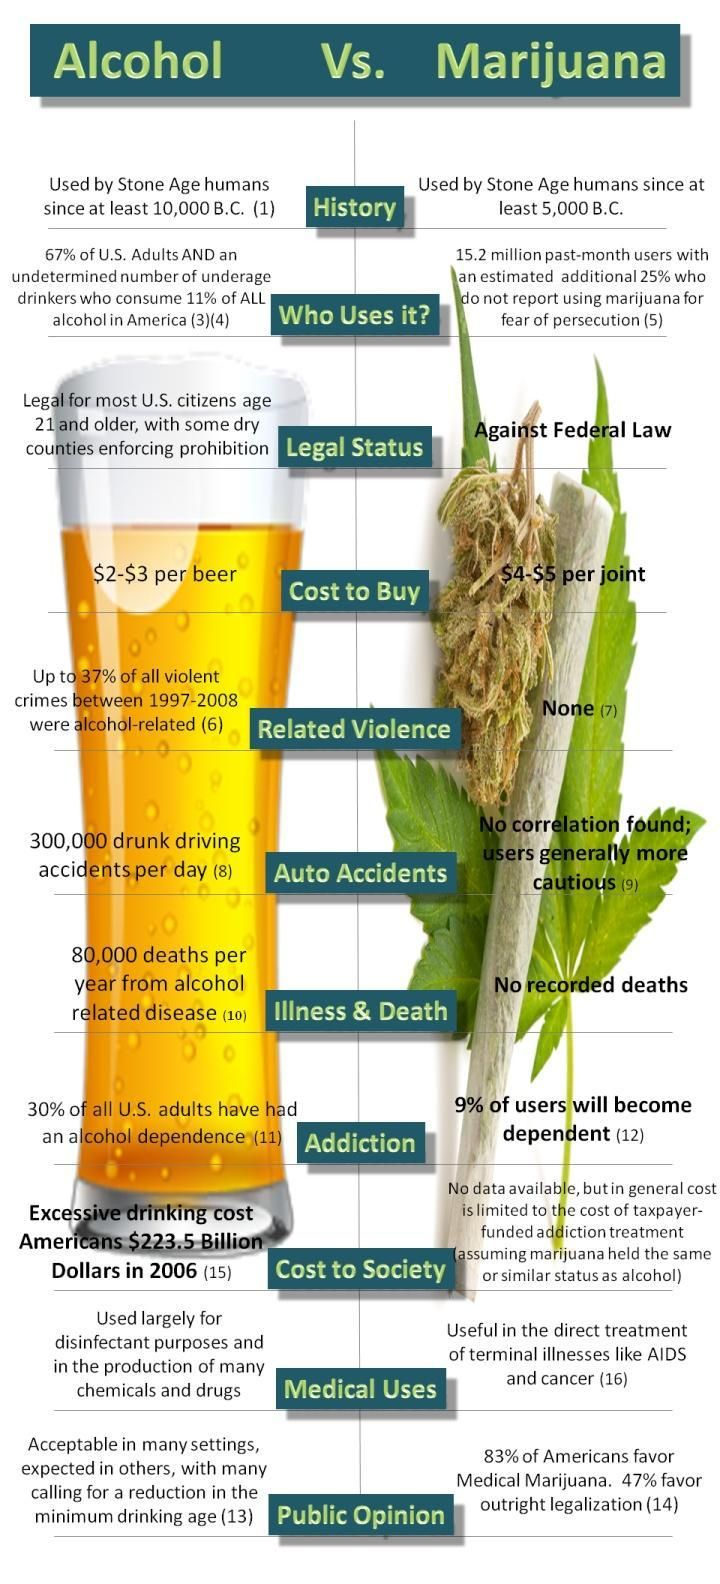 Alcohol vs Marijuana. Clearly alcohol is more dangerous.